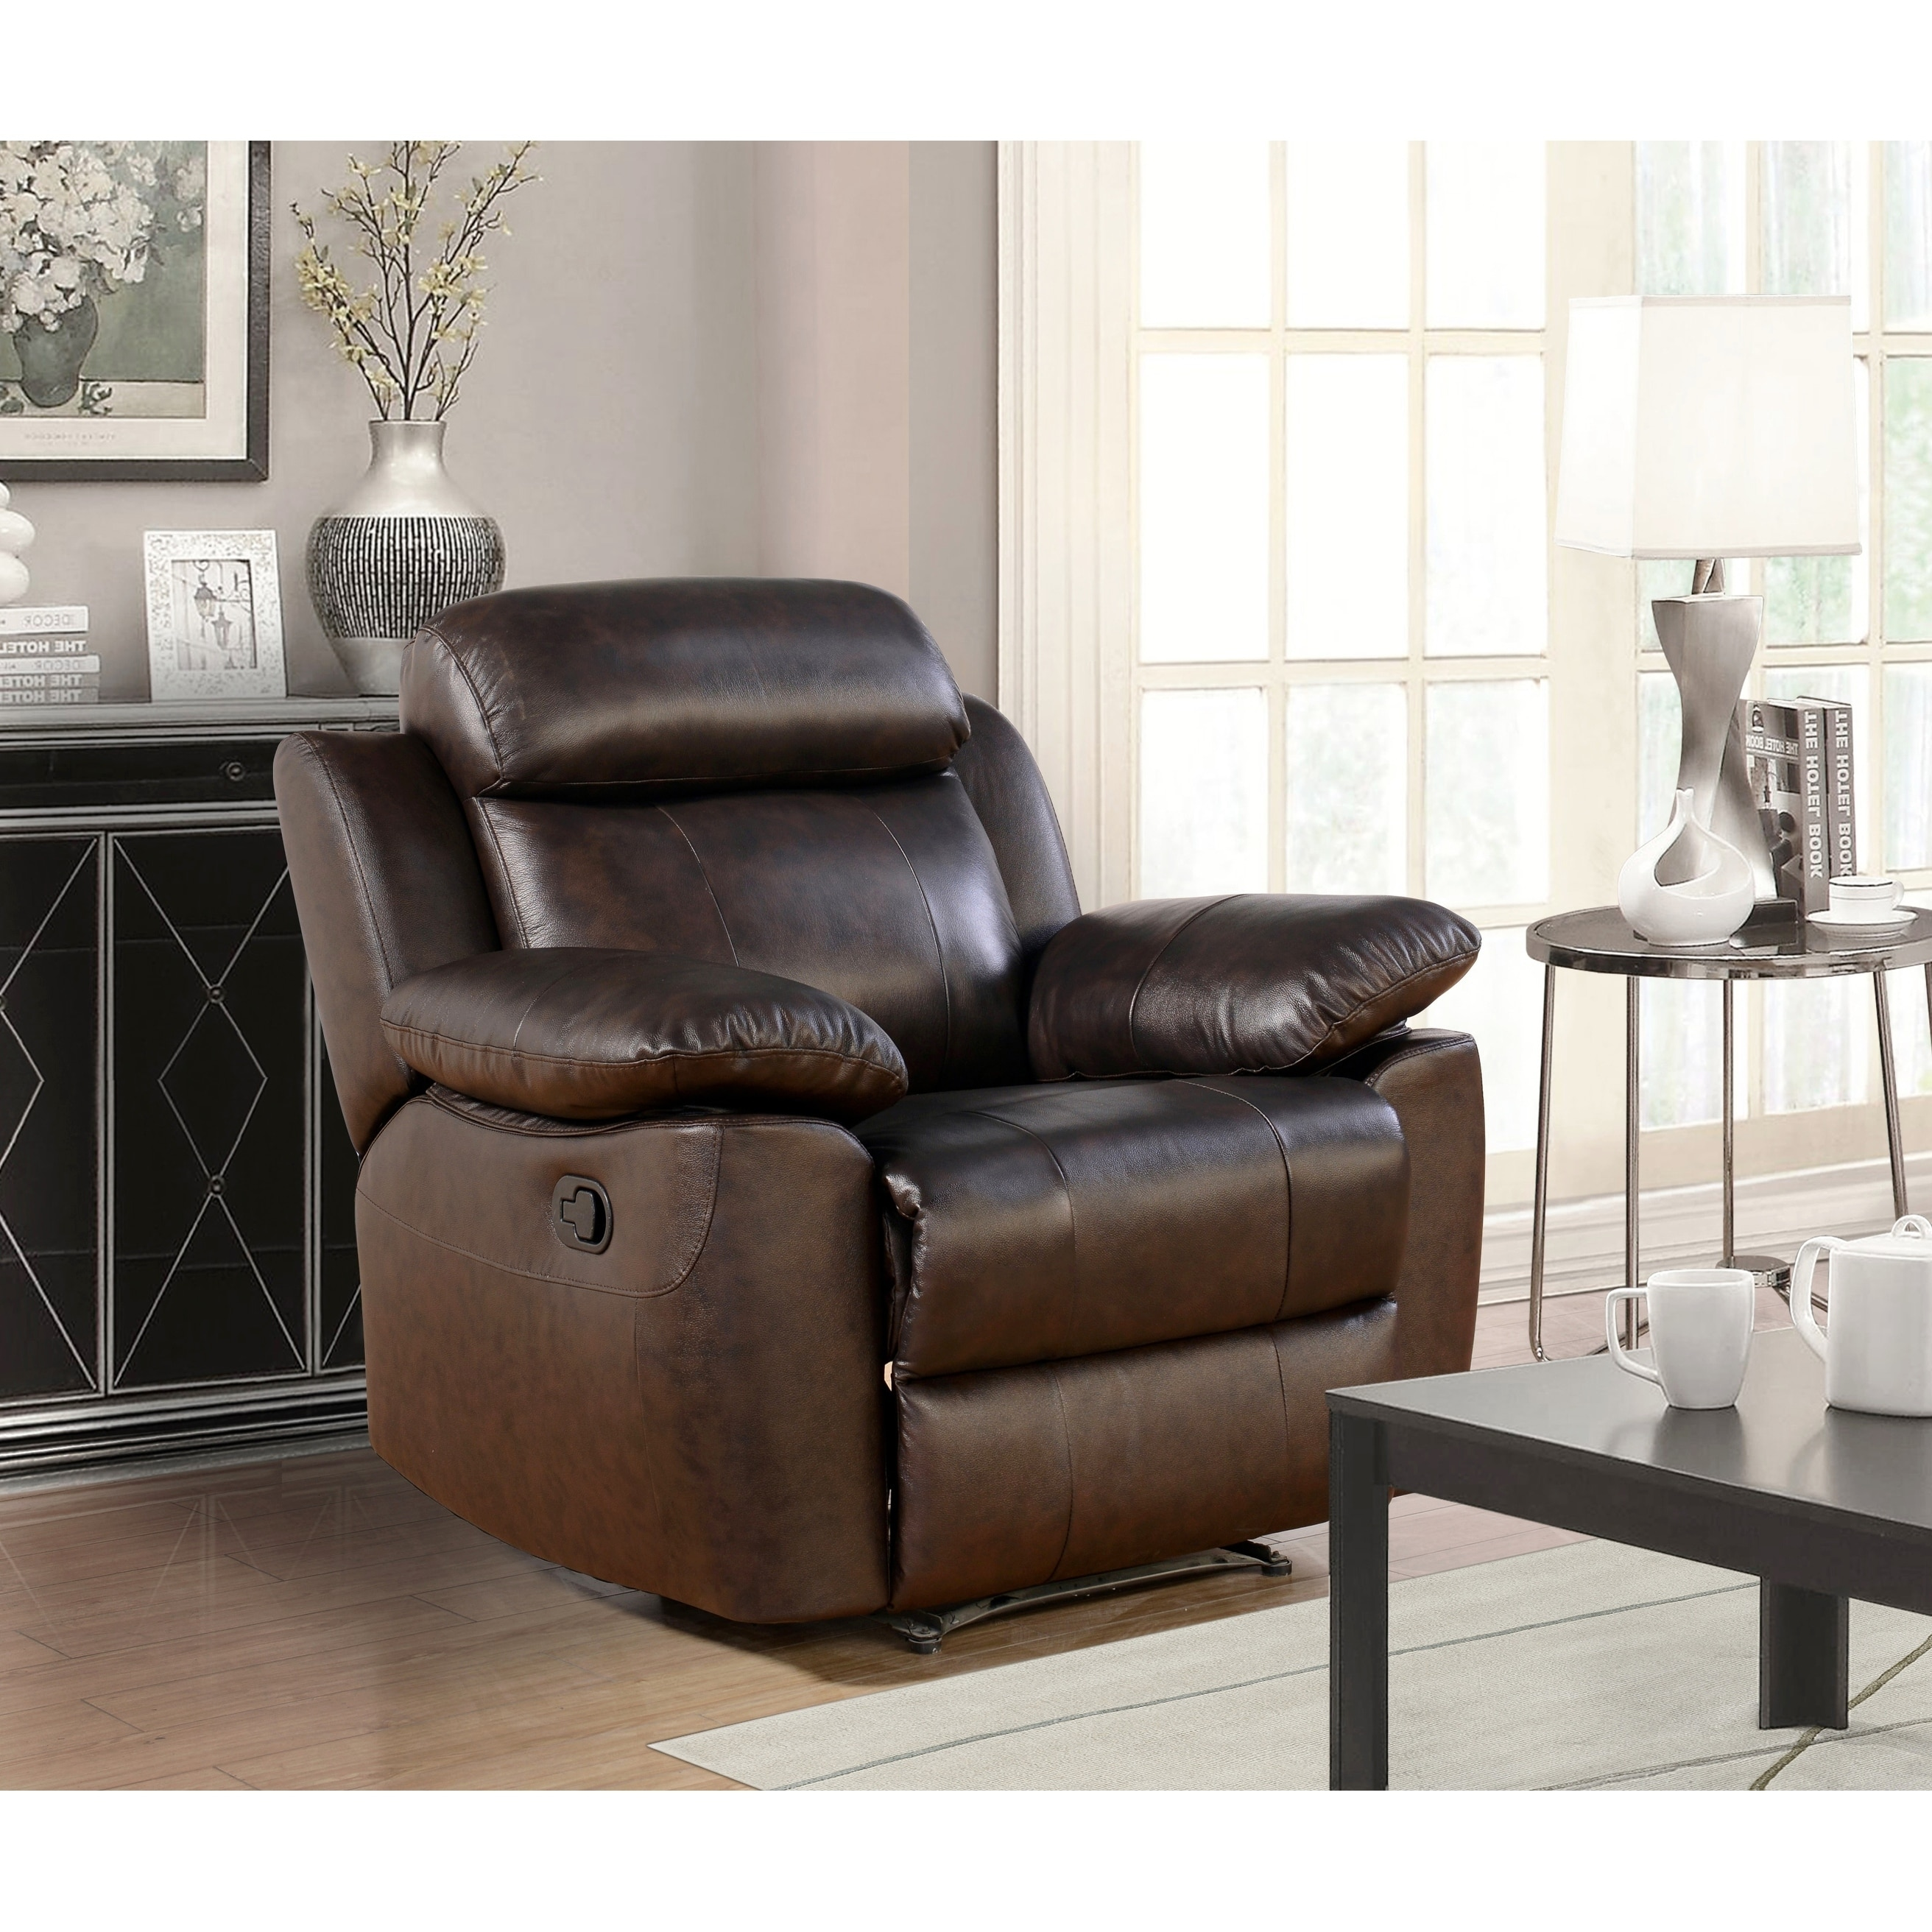 Astonishing Abbyson Braylen Brown Top Grain Leather Recliner Recliners Onthecornerstone Fun Painted Chair Ideas Images Onthecornerstoneorg